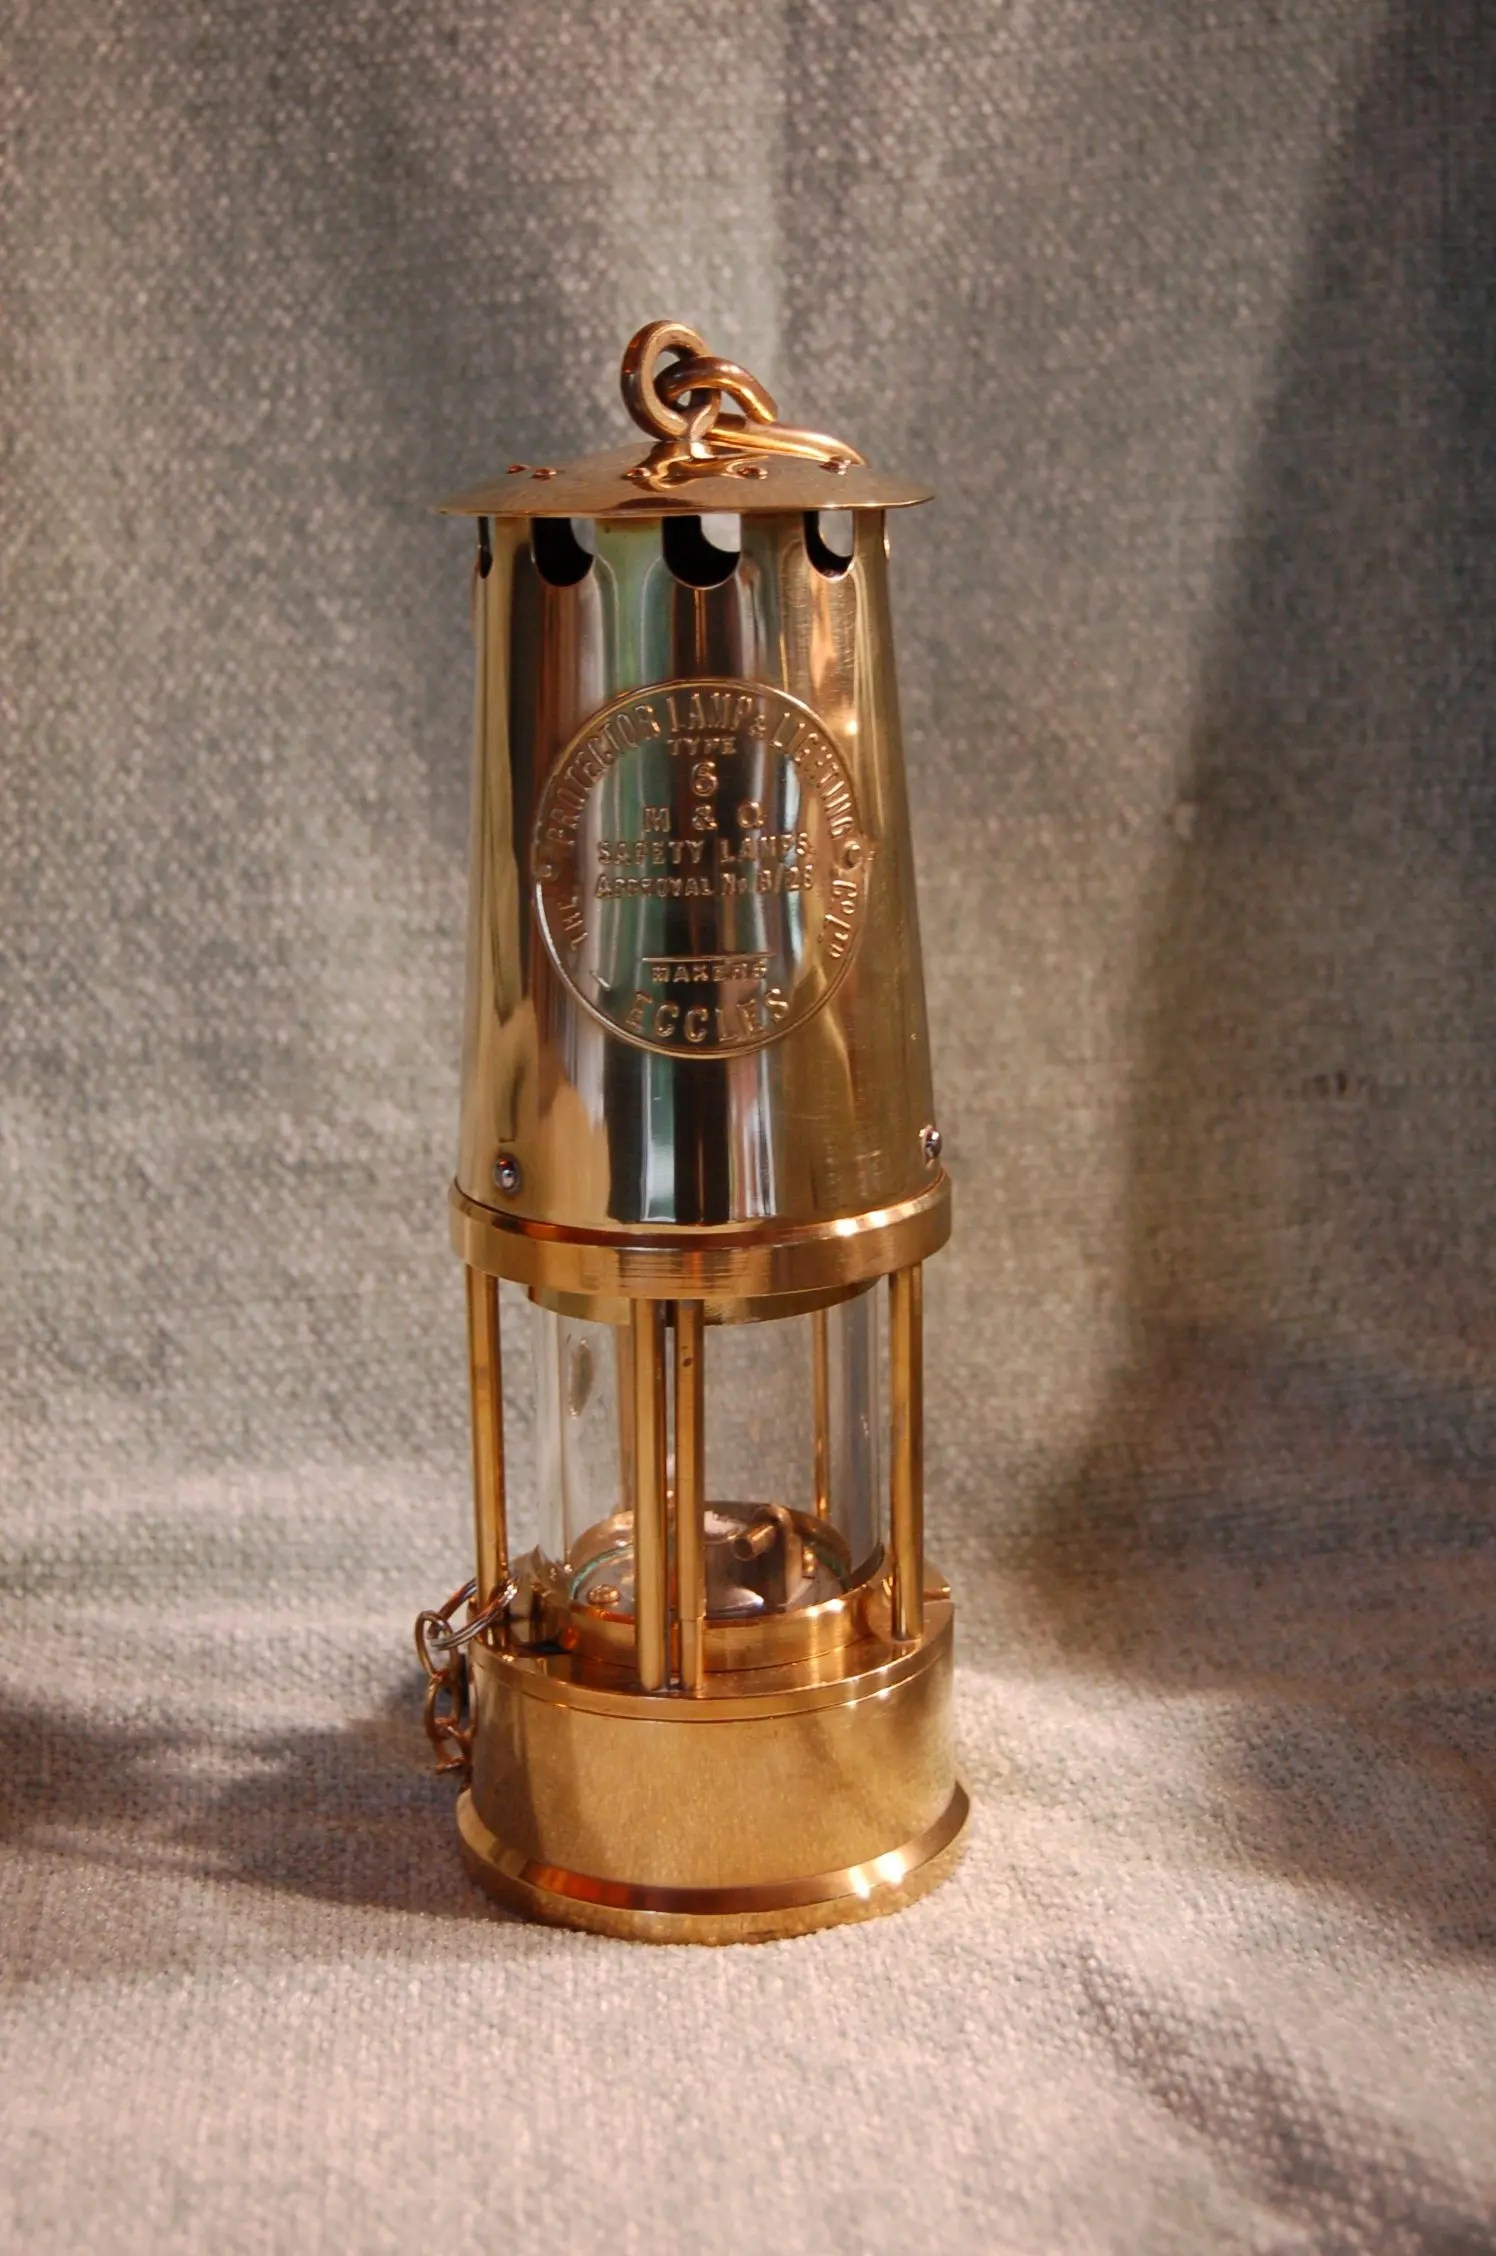 eccles-miners-lamps-davy-lamp